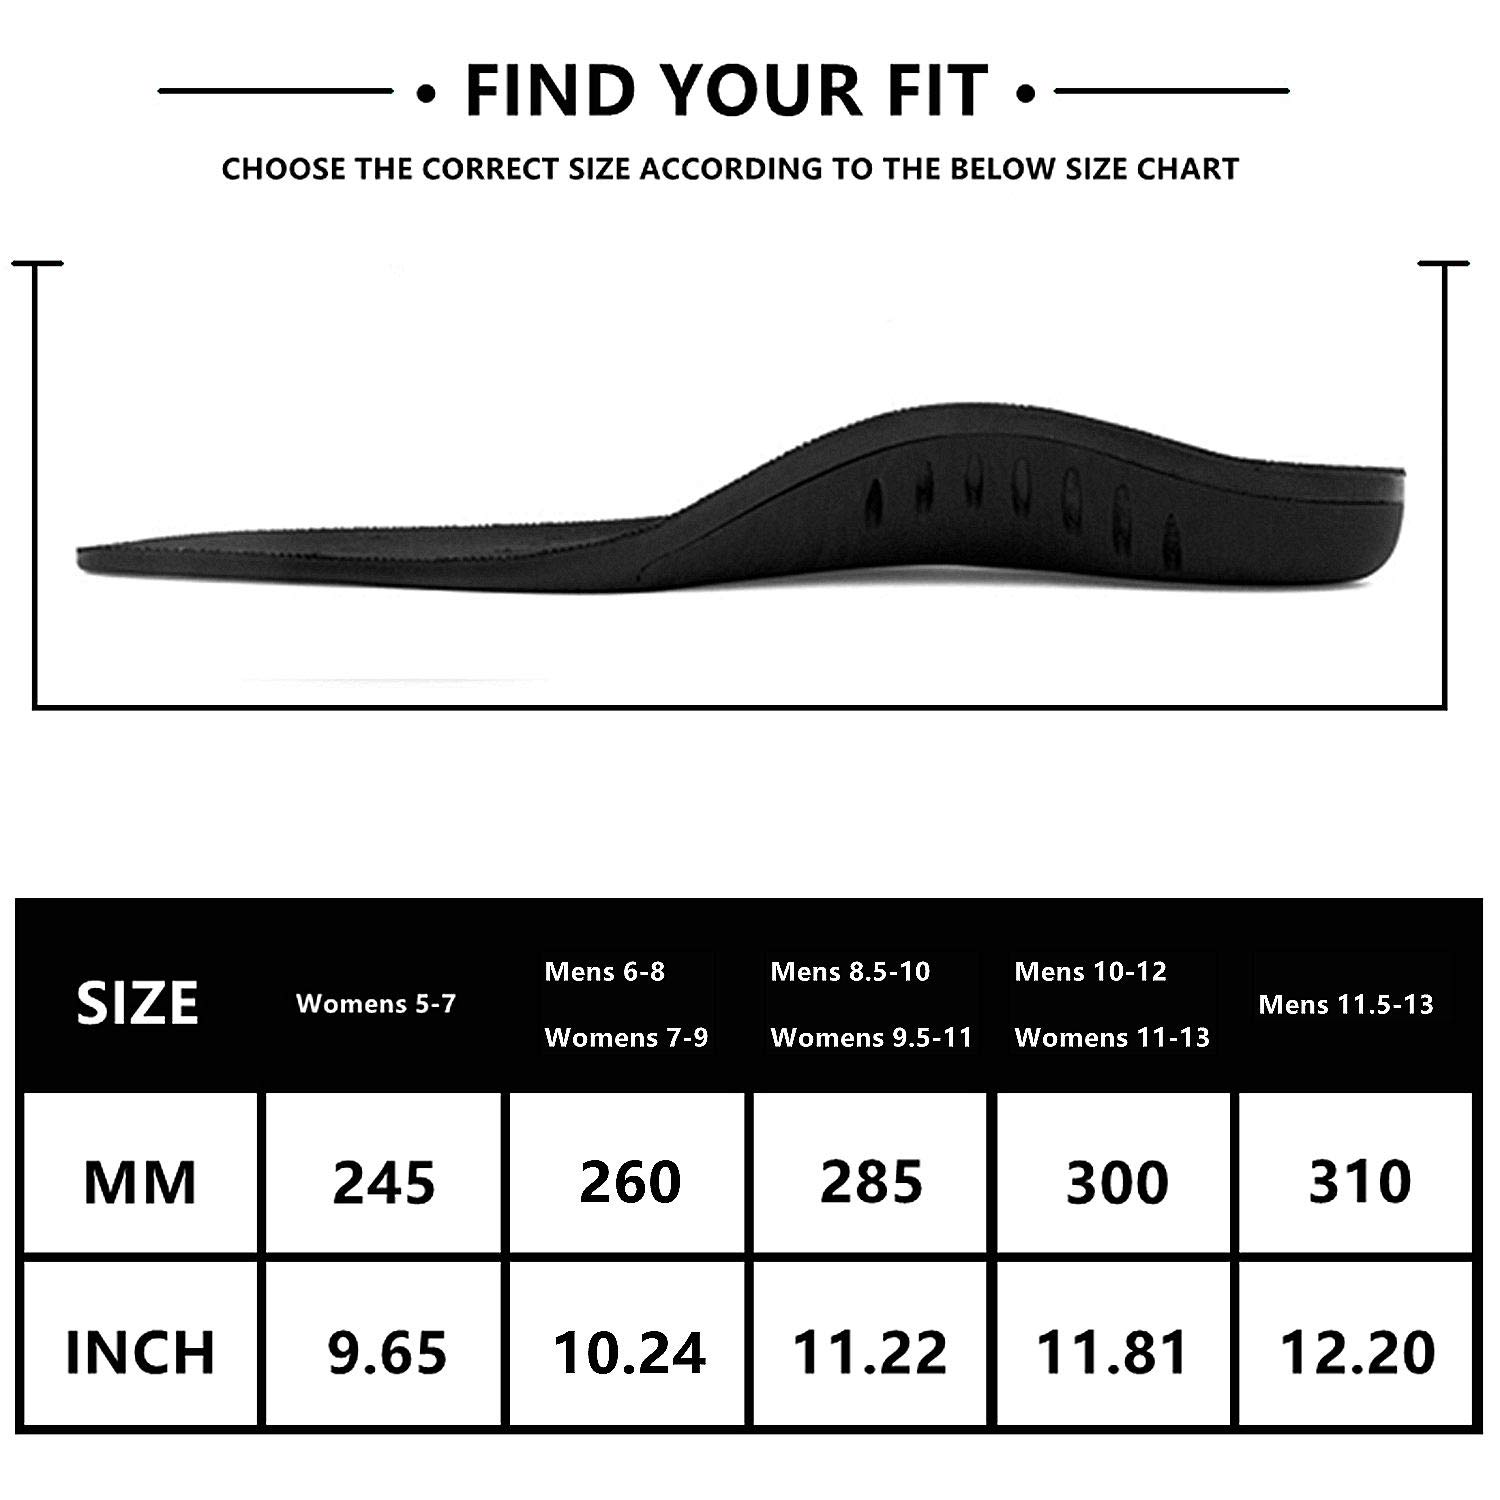 Hyperspace Sports Insole for Gel High Arch Support Shoe Inserts Plantar Fasciitis Orthotic Inserts Maximum Comfort and Shock Absorption for Flat Feet and Injury Prevention (Black XL) by Hyperspace (Image #6)